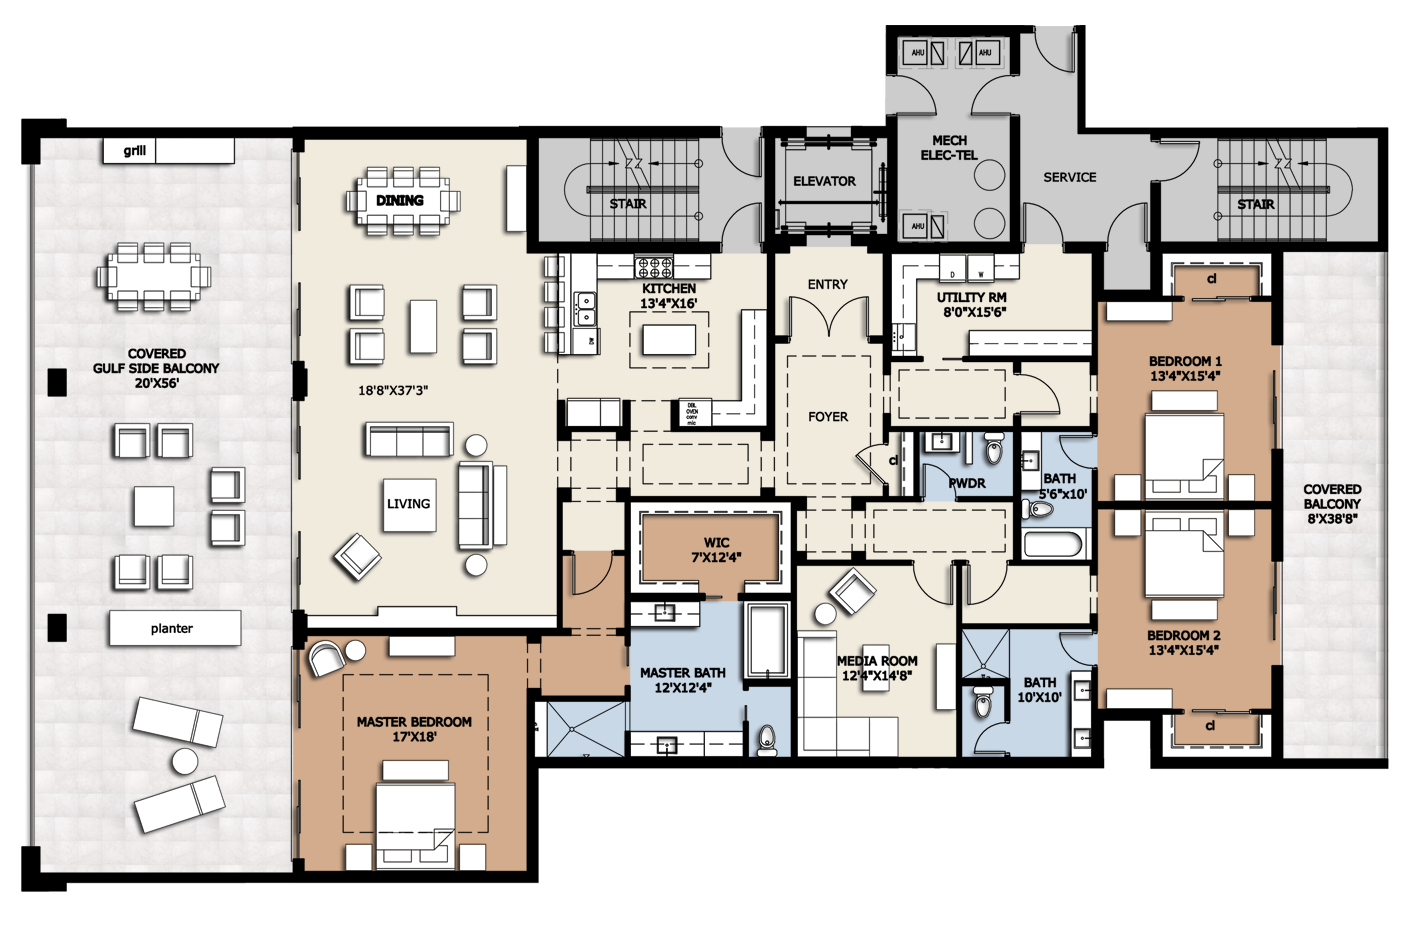 Floor plan residence b infinity longboat key condos for for Condominium floor plan